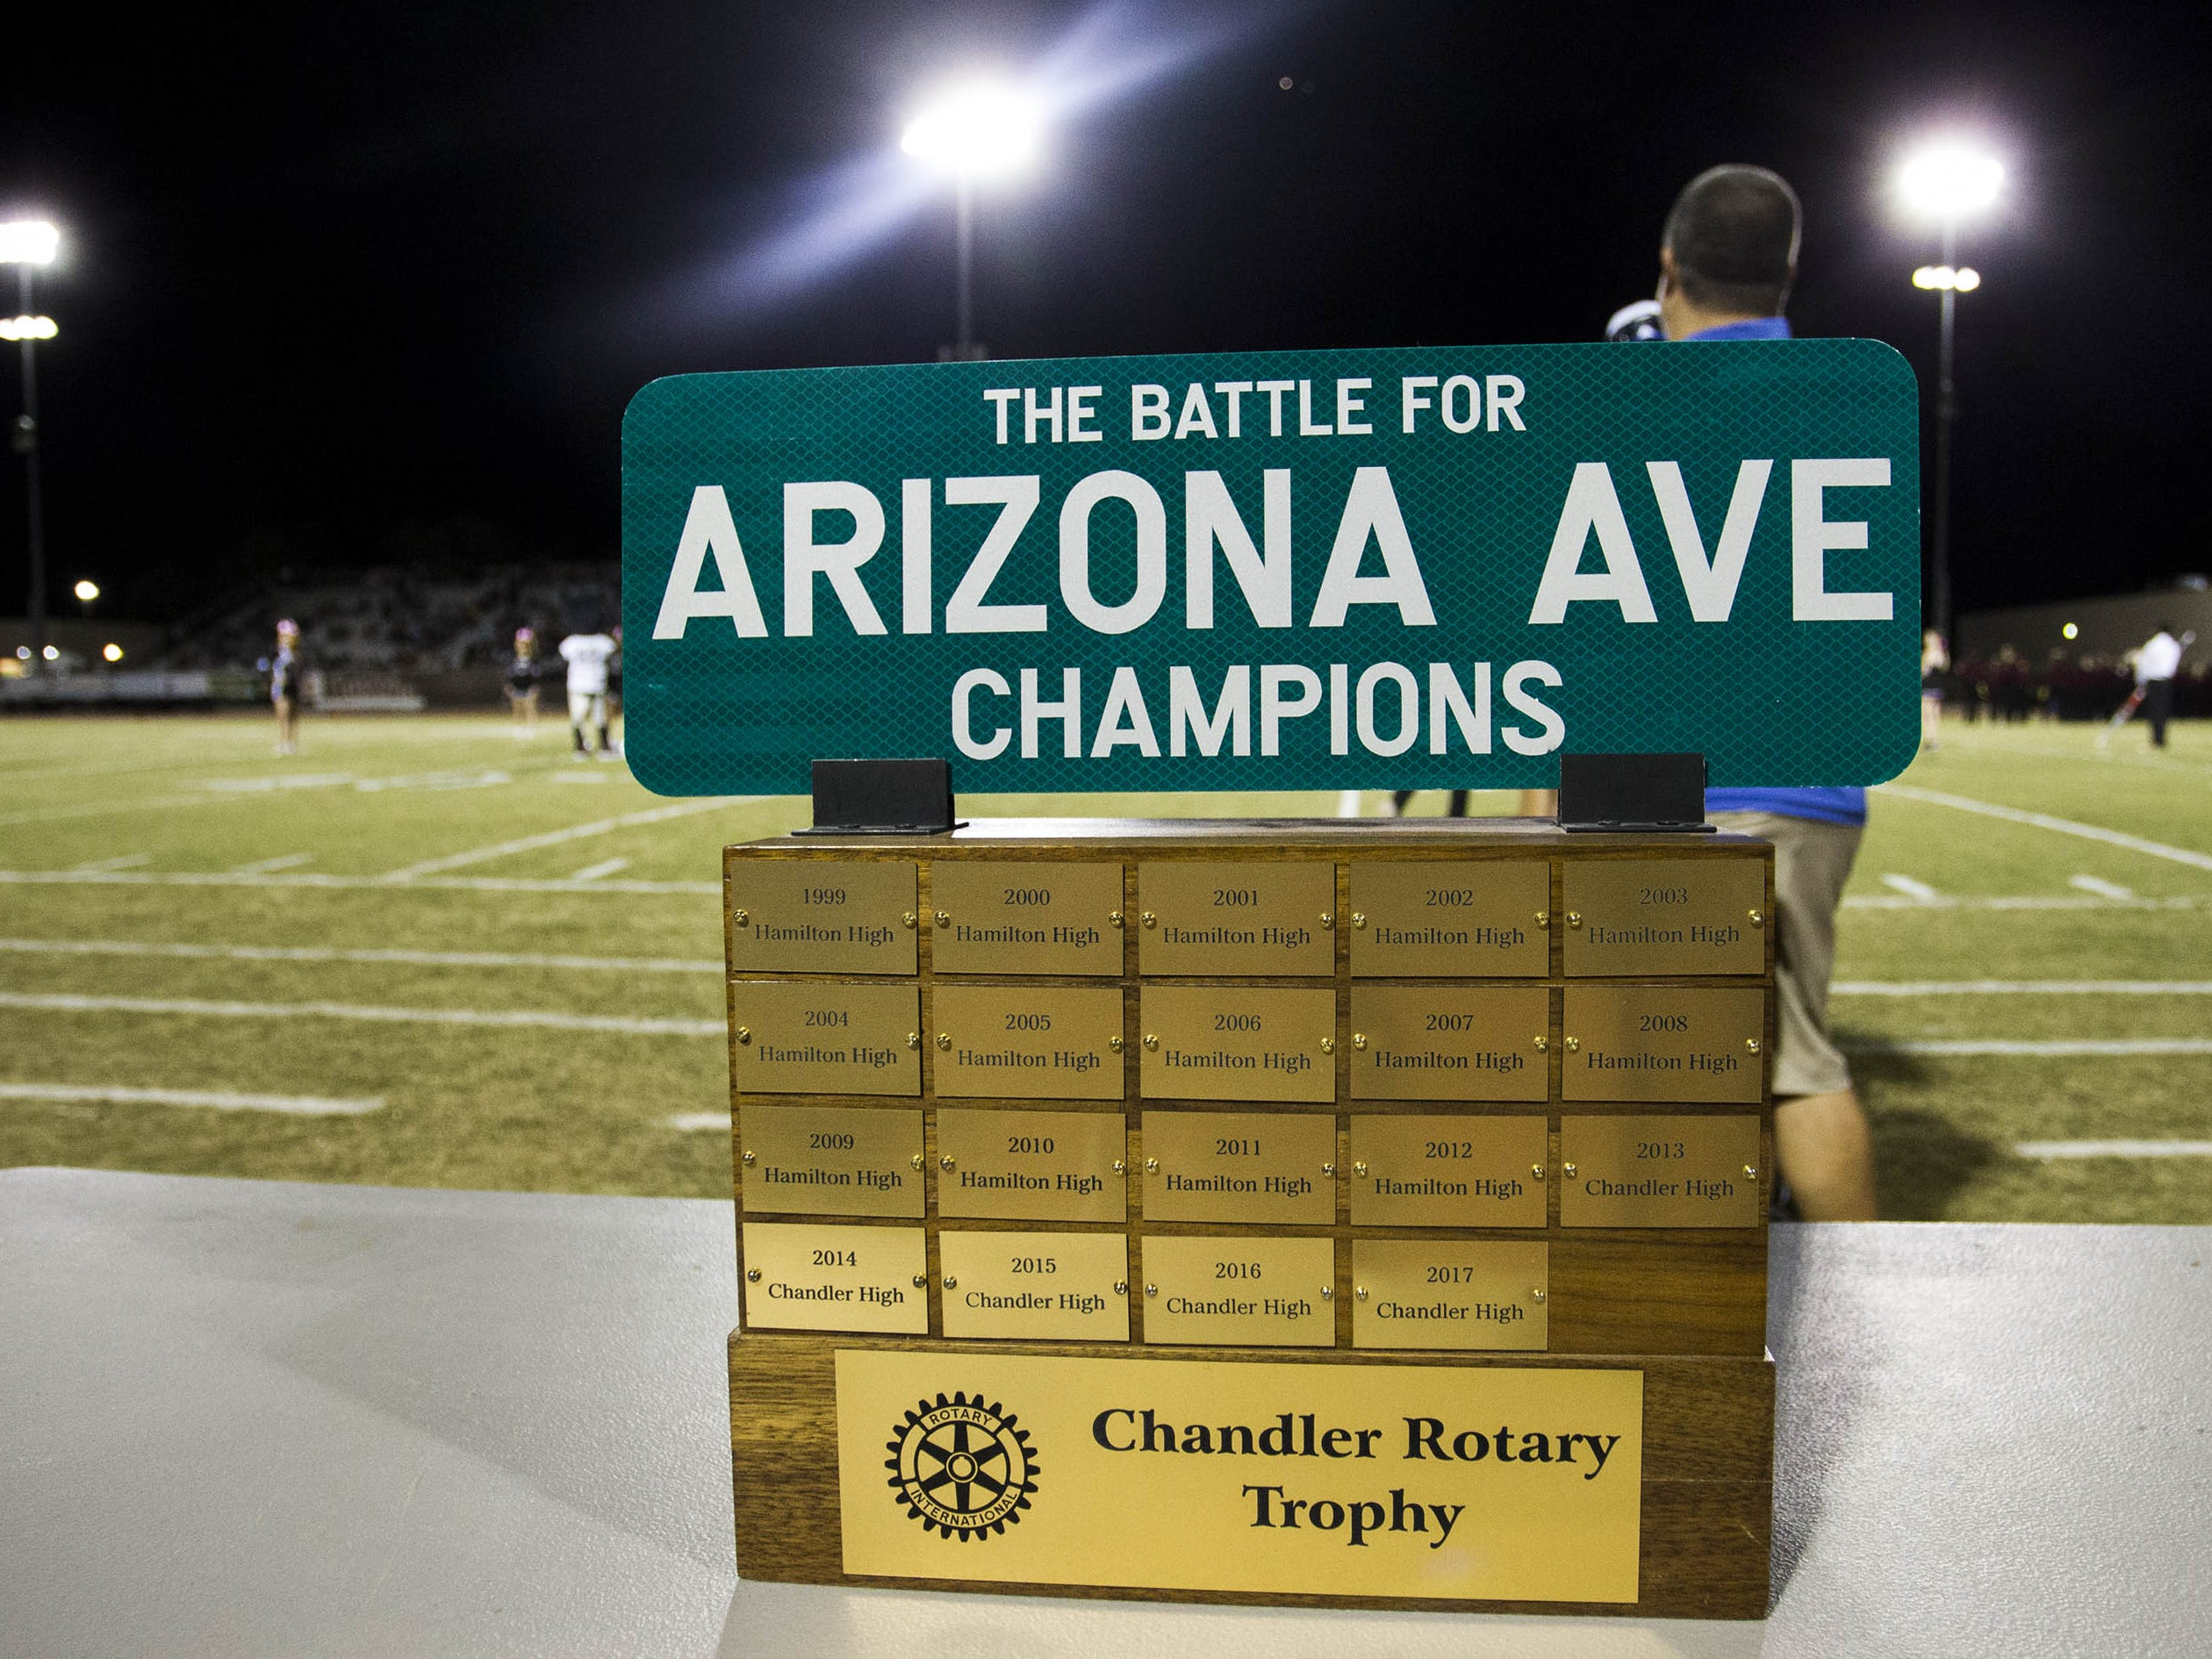 The Battle for Arizona Ave trophy between the Chandler High and their crosstown rivals the Hamilton Huskies in Chandler, Friday, Oct. 26, 2018. #azhsfb